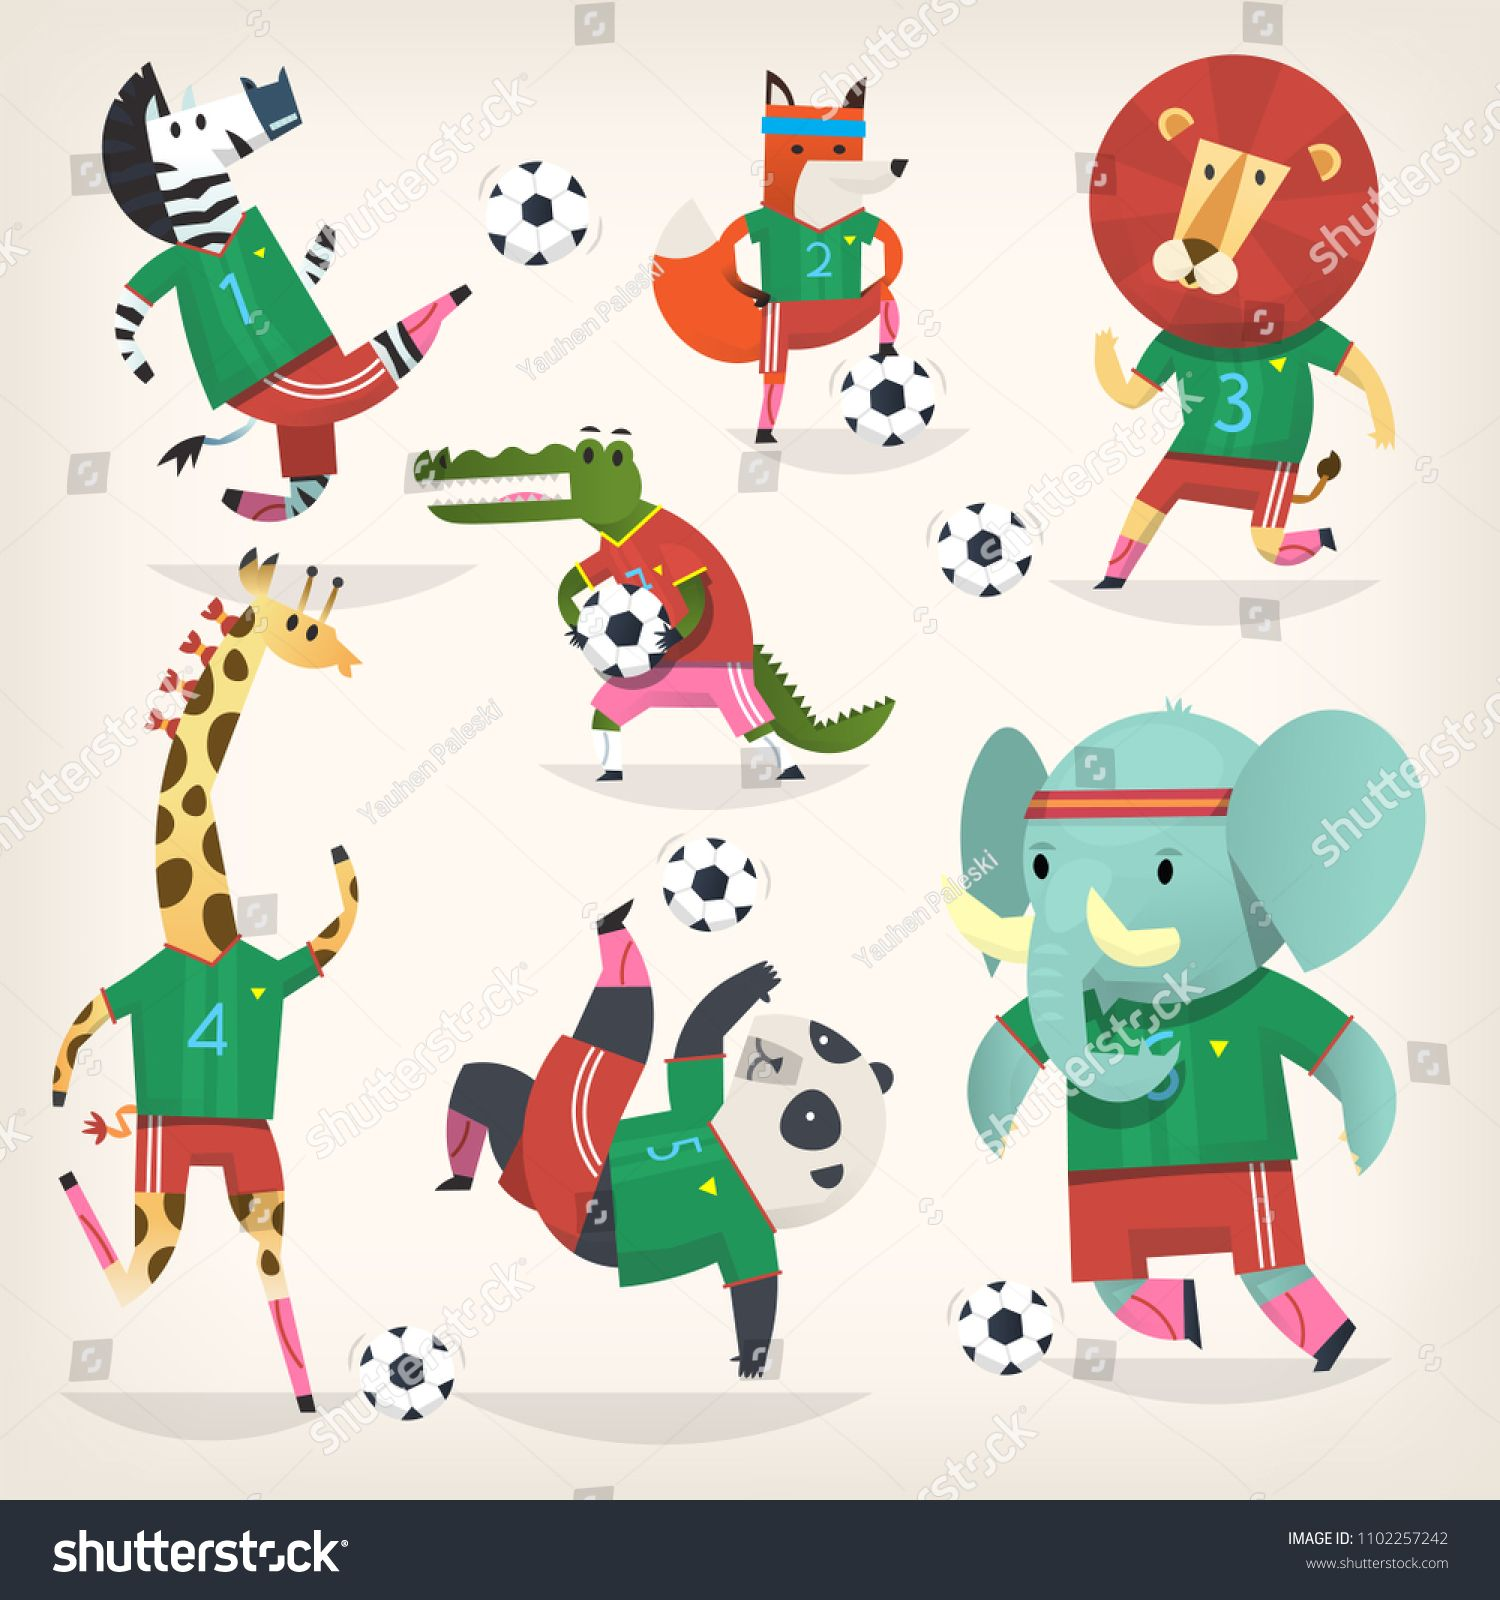 Team of wild animals playing football. Second team. Cute.